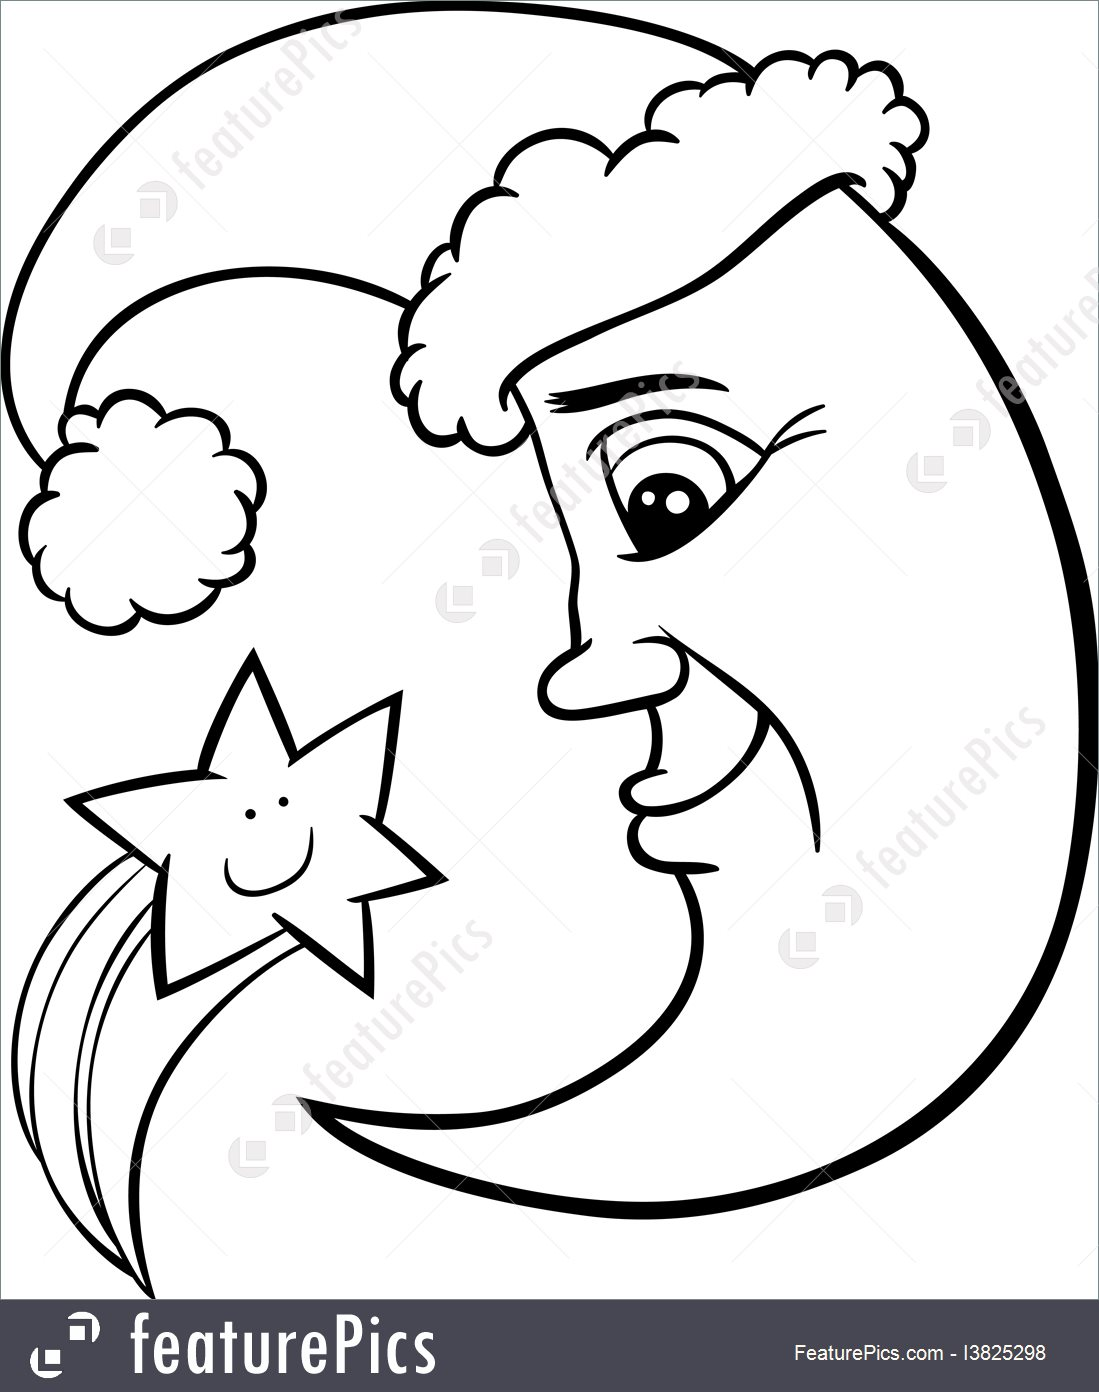 1099x1392 Moon And Star Christmas Coloring Page Illustration